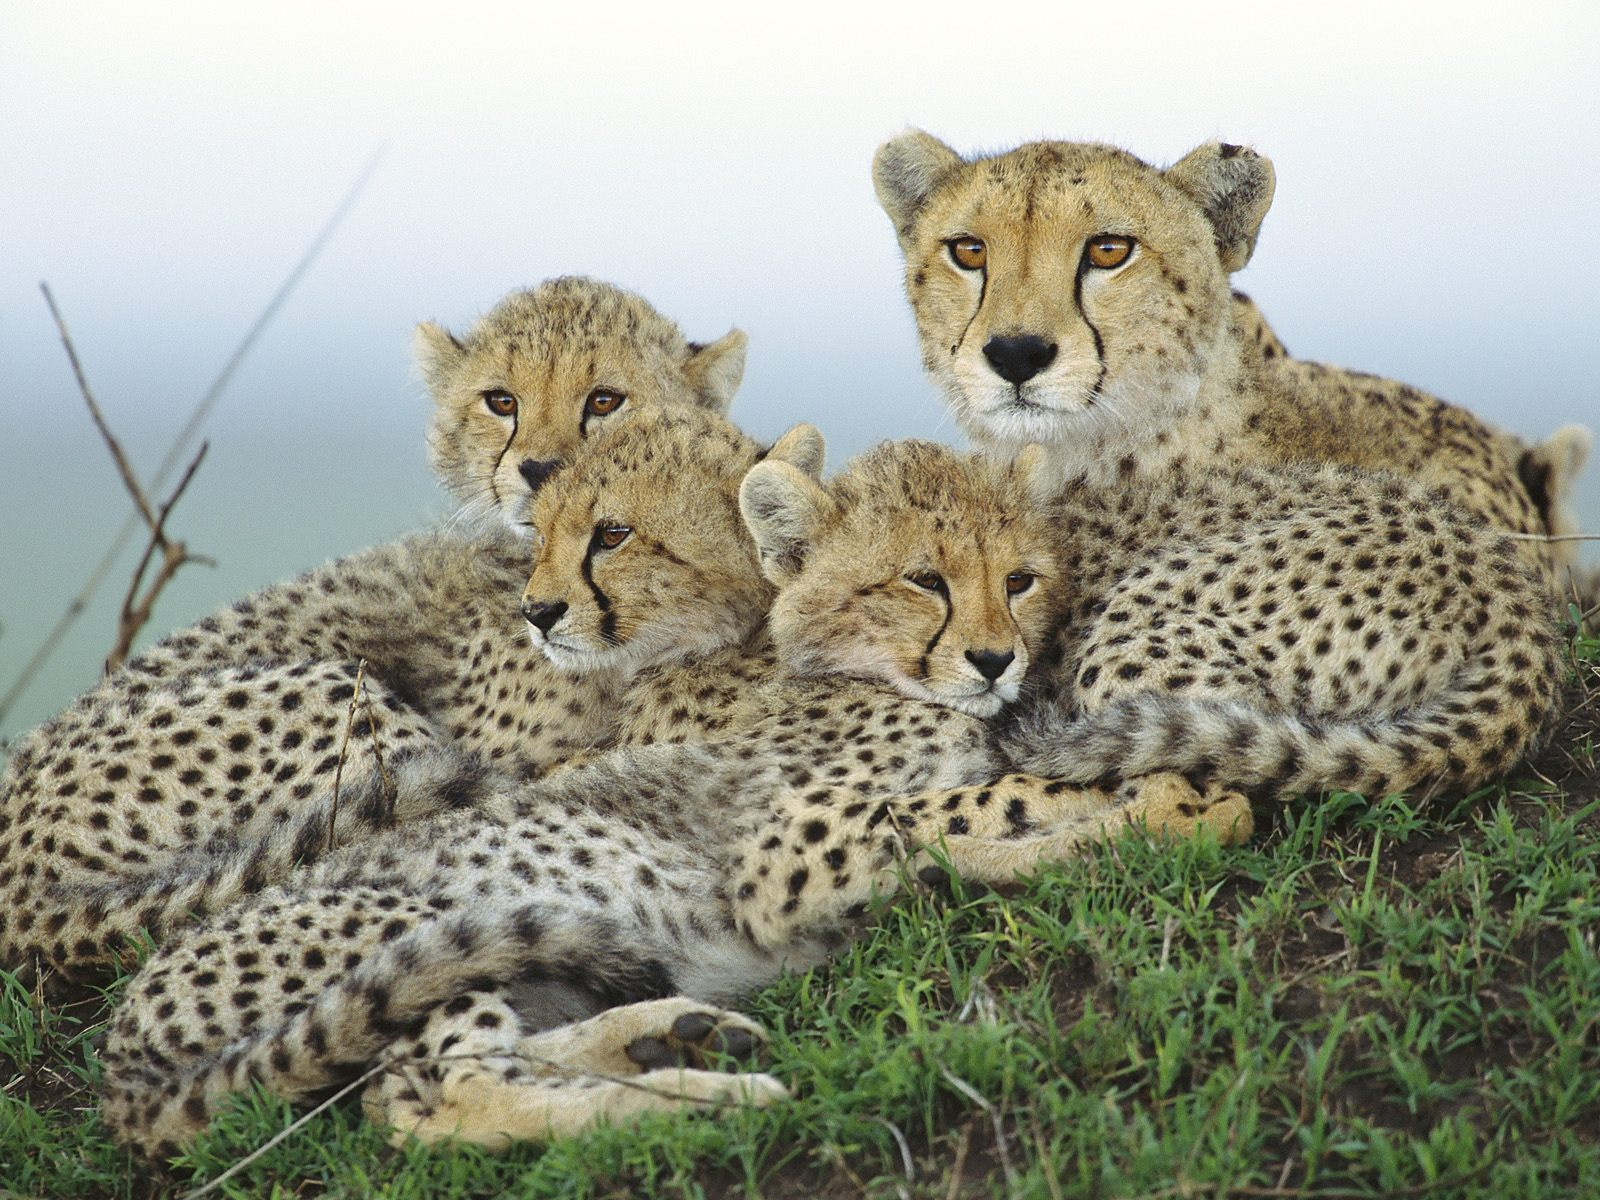 Animal Cubs images Cheetah with Cubs HD wallpaper and background photos